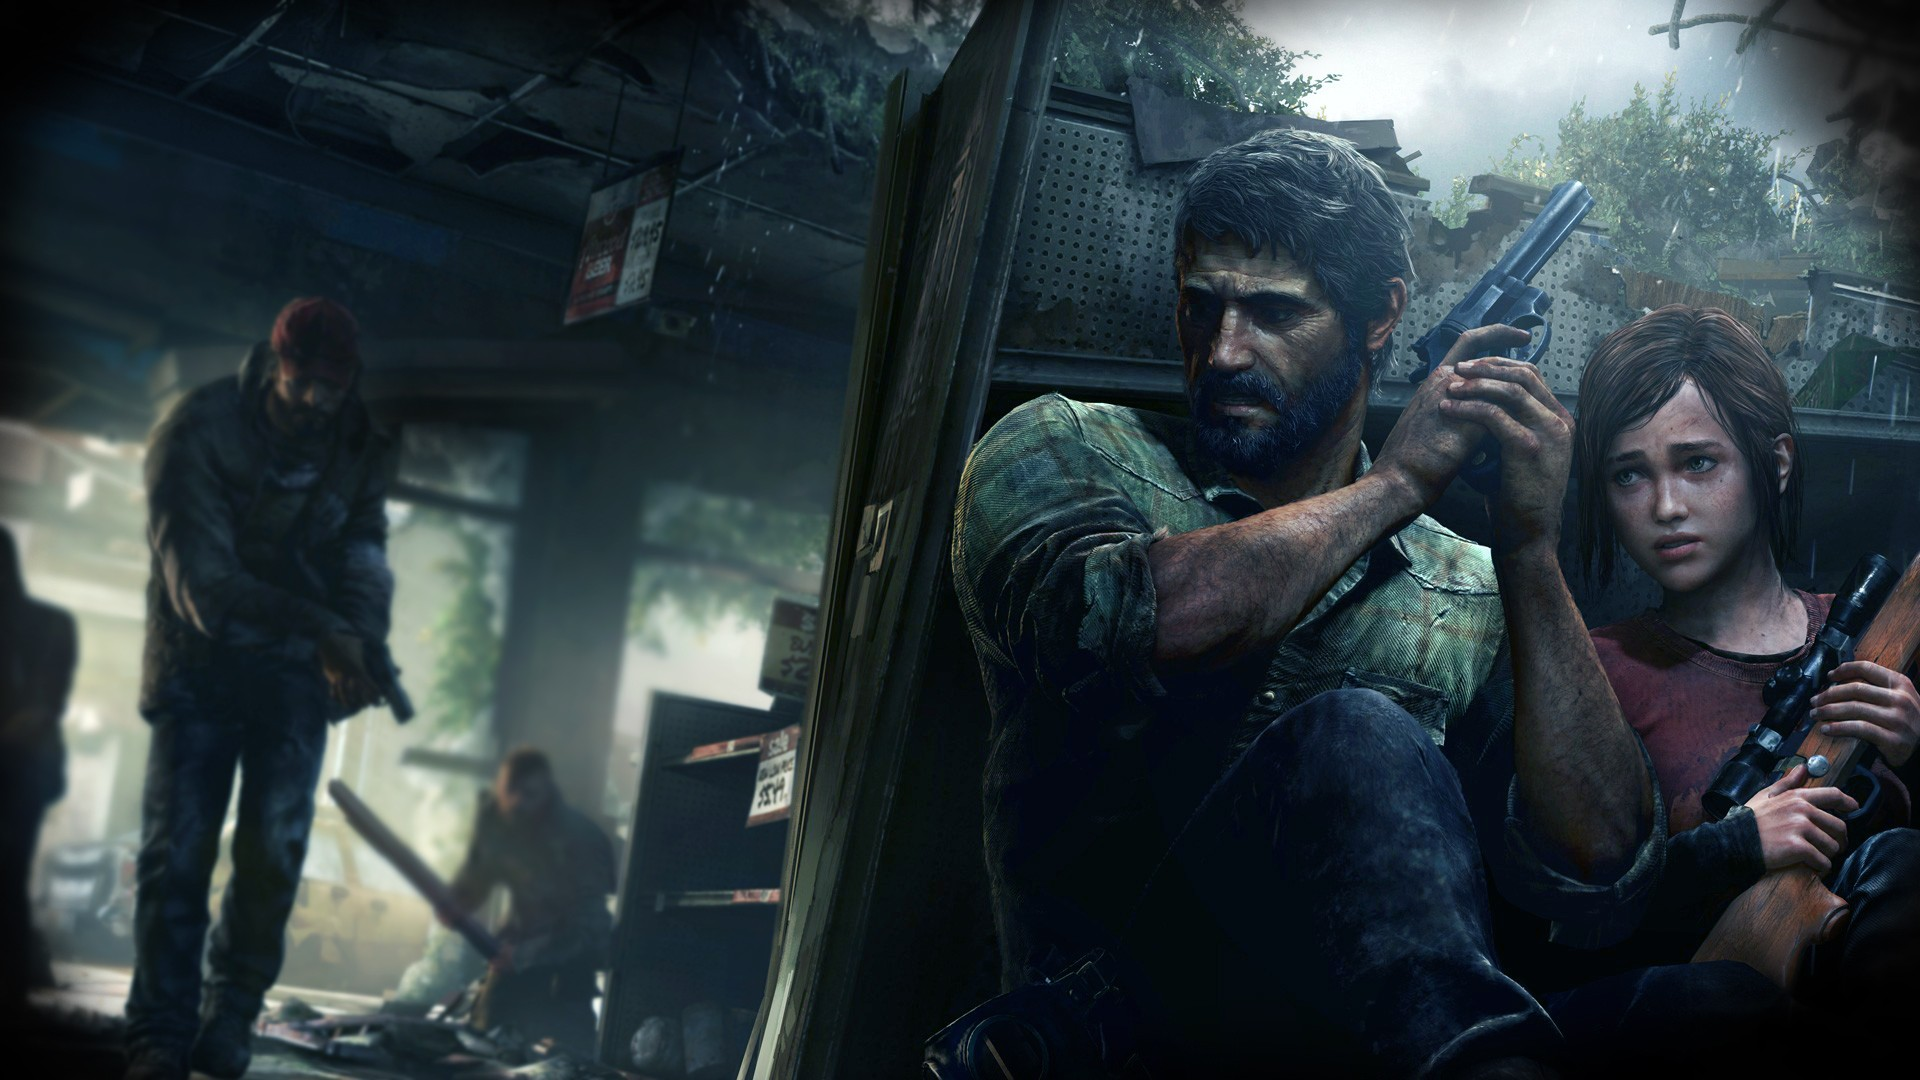 The Last Of Us Res: 1920x1080 HD / Size:342kb. Views: 51719